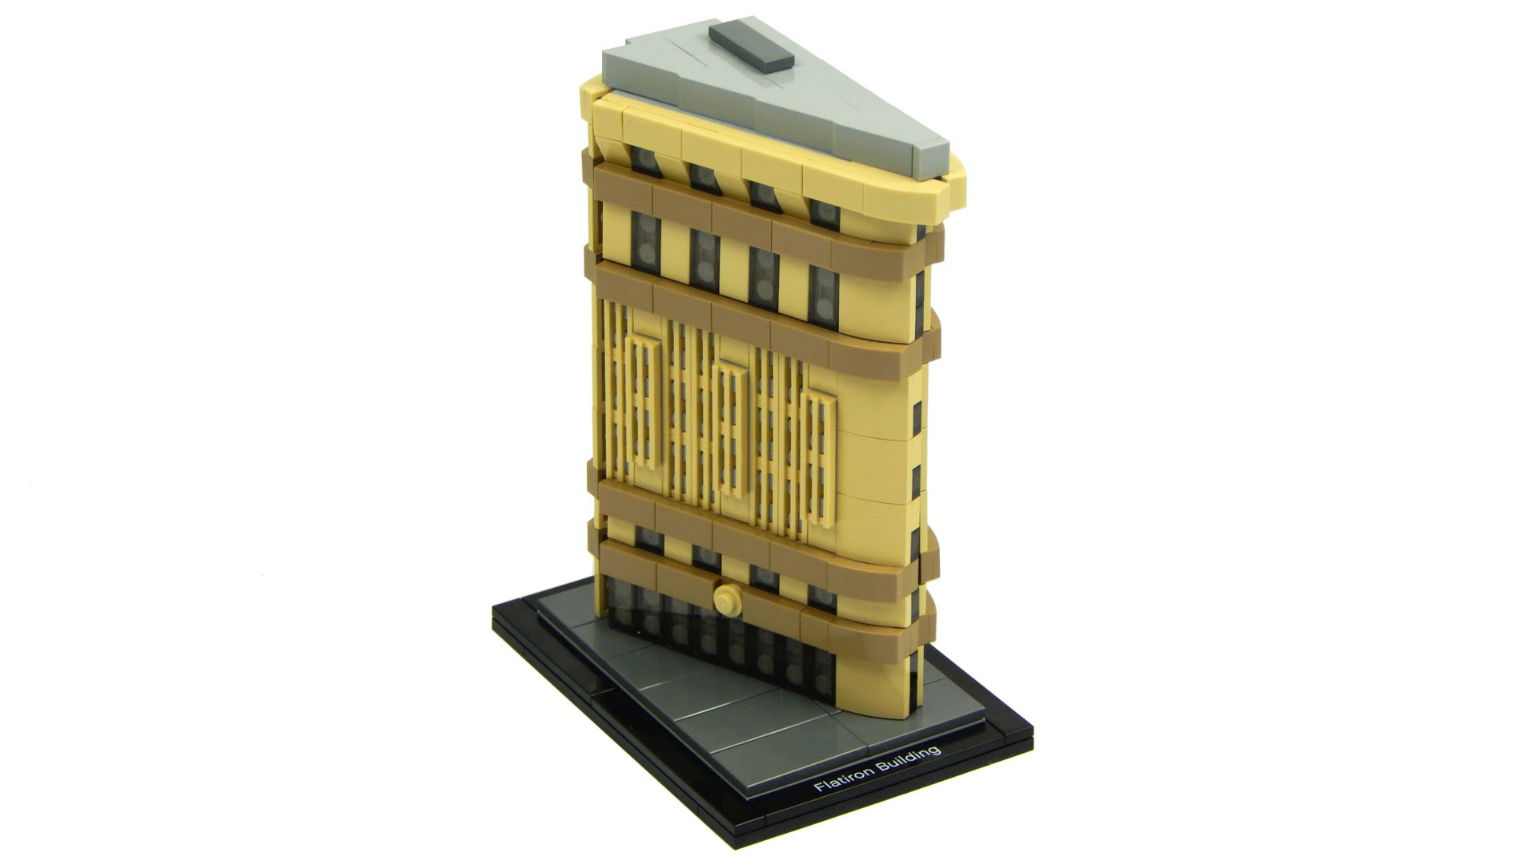 The Flatiron Building is the next model in Lego Architecture line